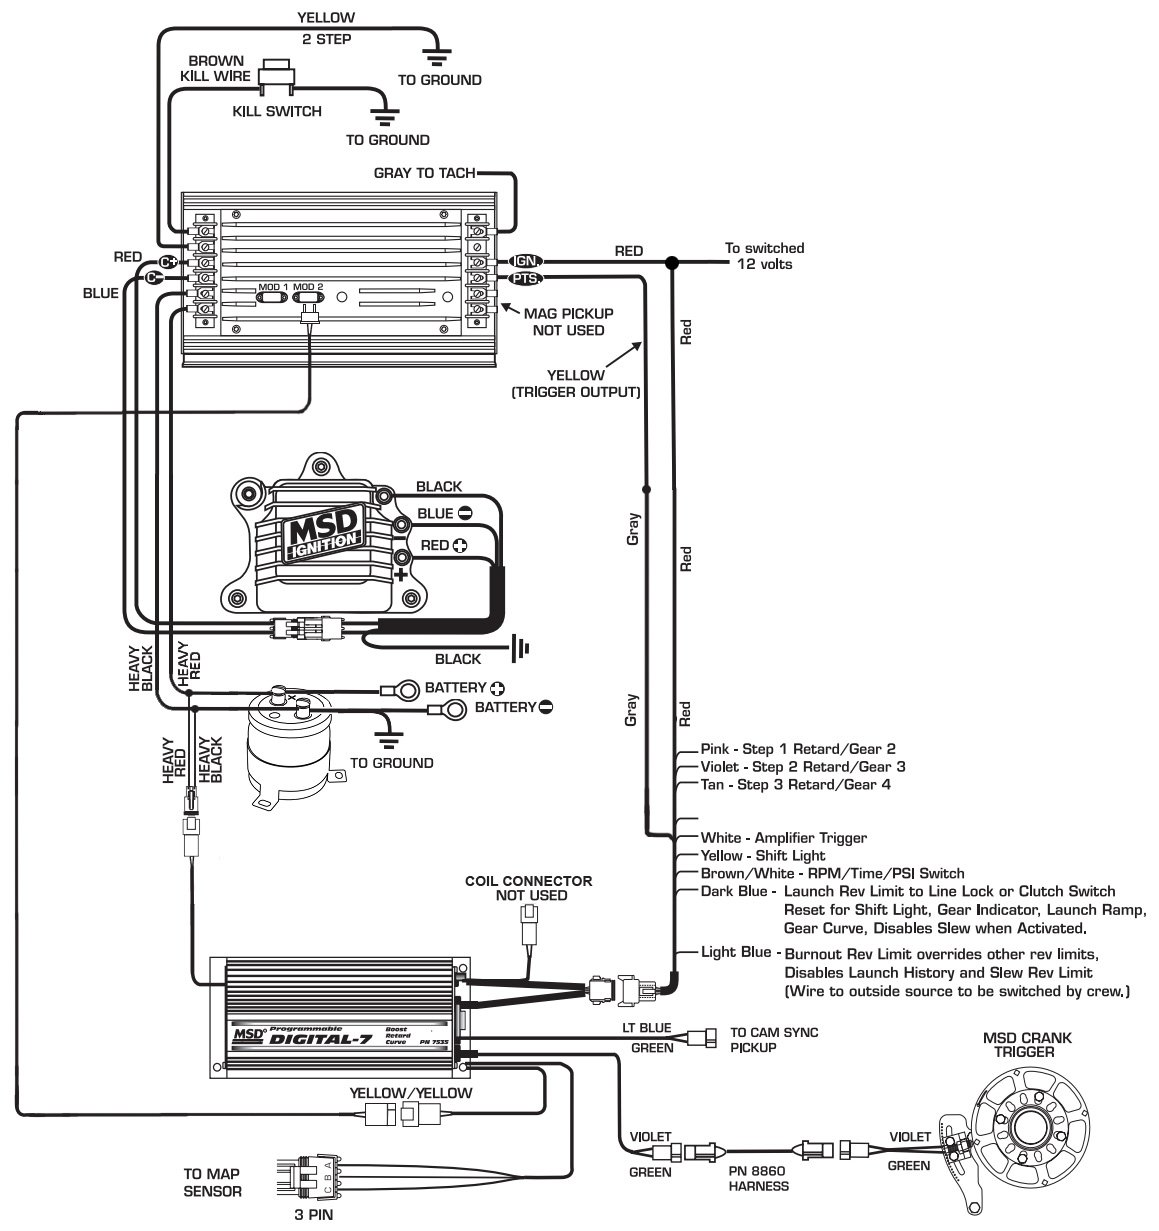 Sunpro Tach With Shift Light Wiring furthermore Tel Tach Wiring Diagram furthermore Energy Recovery And Iaq Products together with P 0900c1528008ab73 besides Vertex Mag o Wiring Diagram. on tac wiring diagram